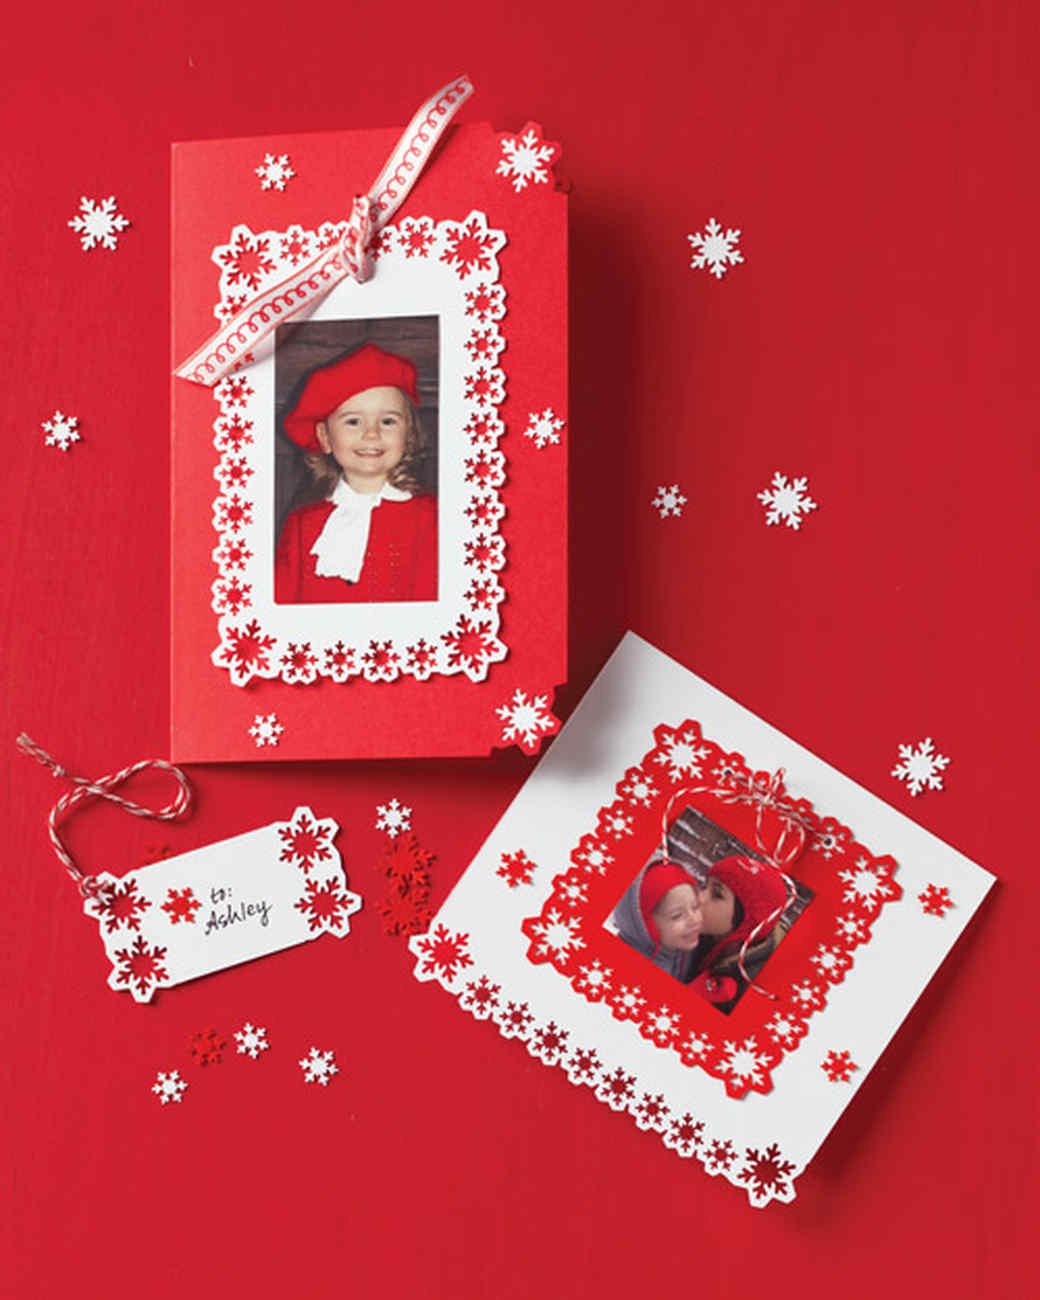 Martha Stewart Card Making Ideas Part - 31: Punched-Snowflake Photo Cards And Gift Tags